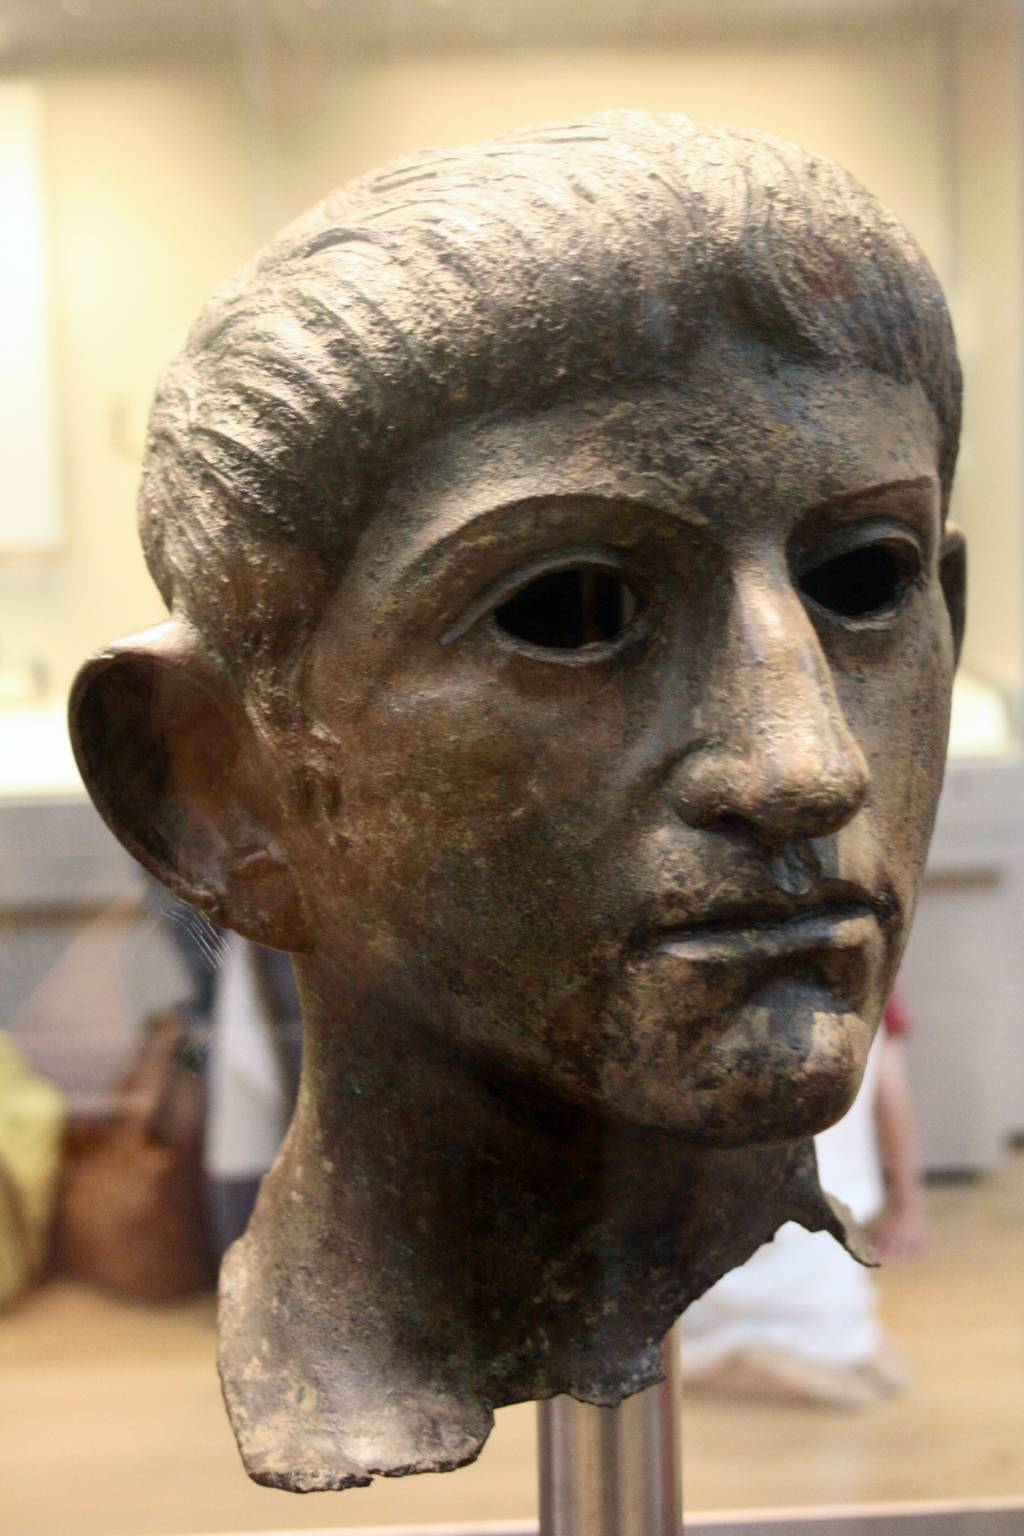 emperor claudius essay Free claudius papers, essays, and research papers exploring the leadership of roman emperor claudius - in this essay we are going to discuss whether claudius was.